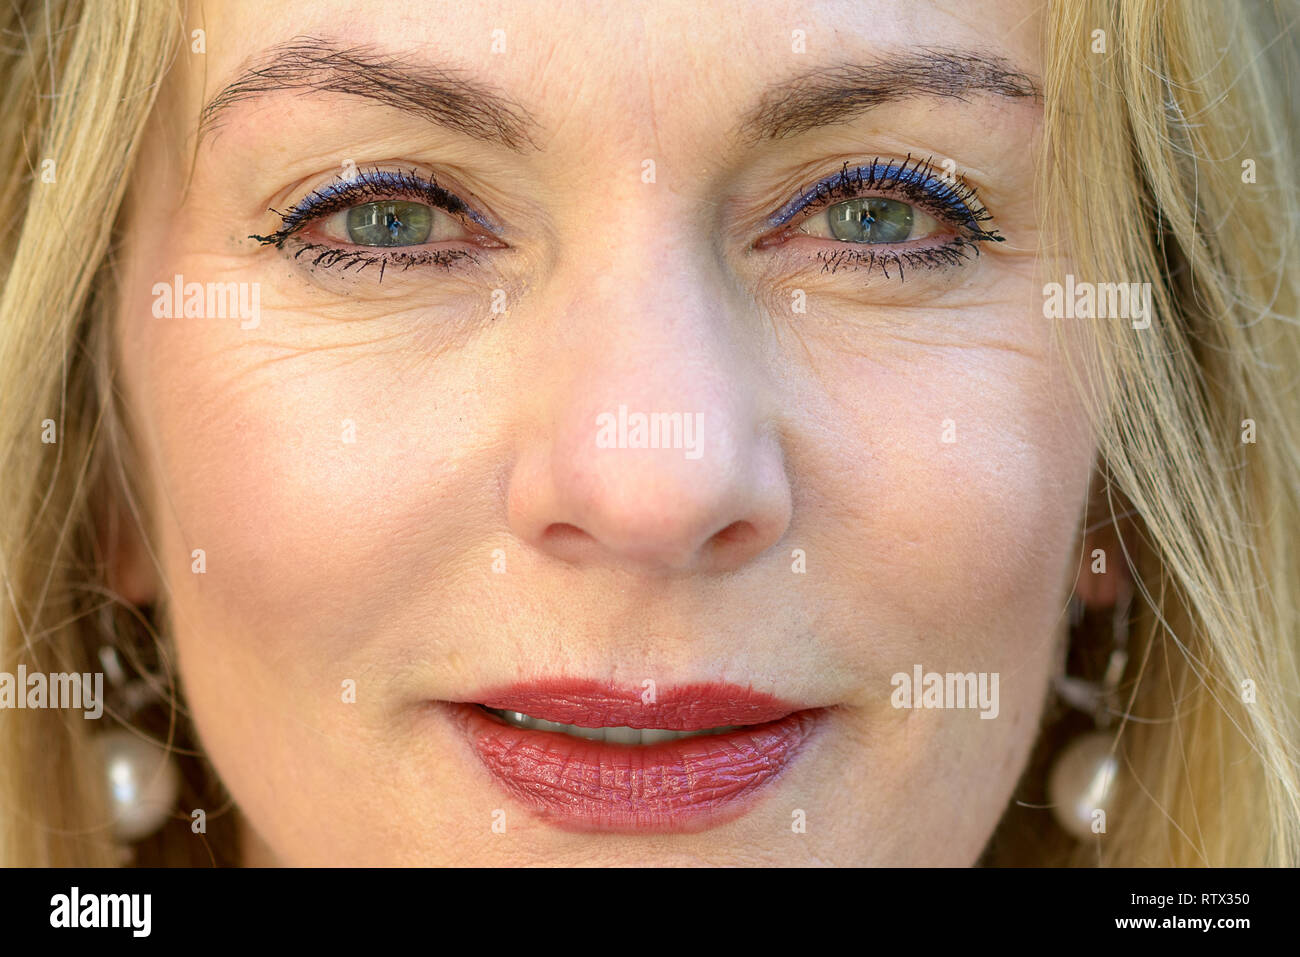 Close up cropped portrait of an attractive blond woman with blue eyes wearing makeup staring into the camera with parted lips - Stock Image